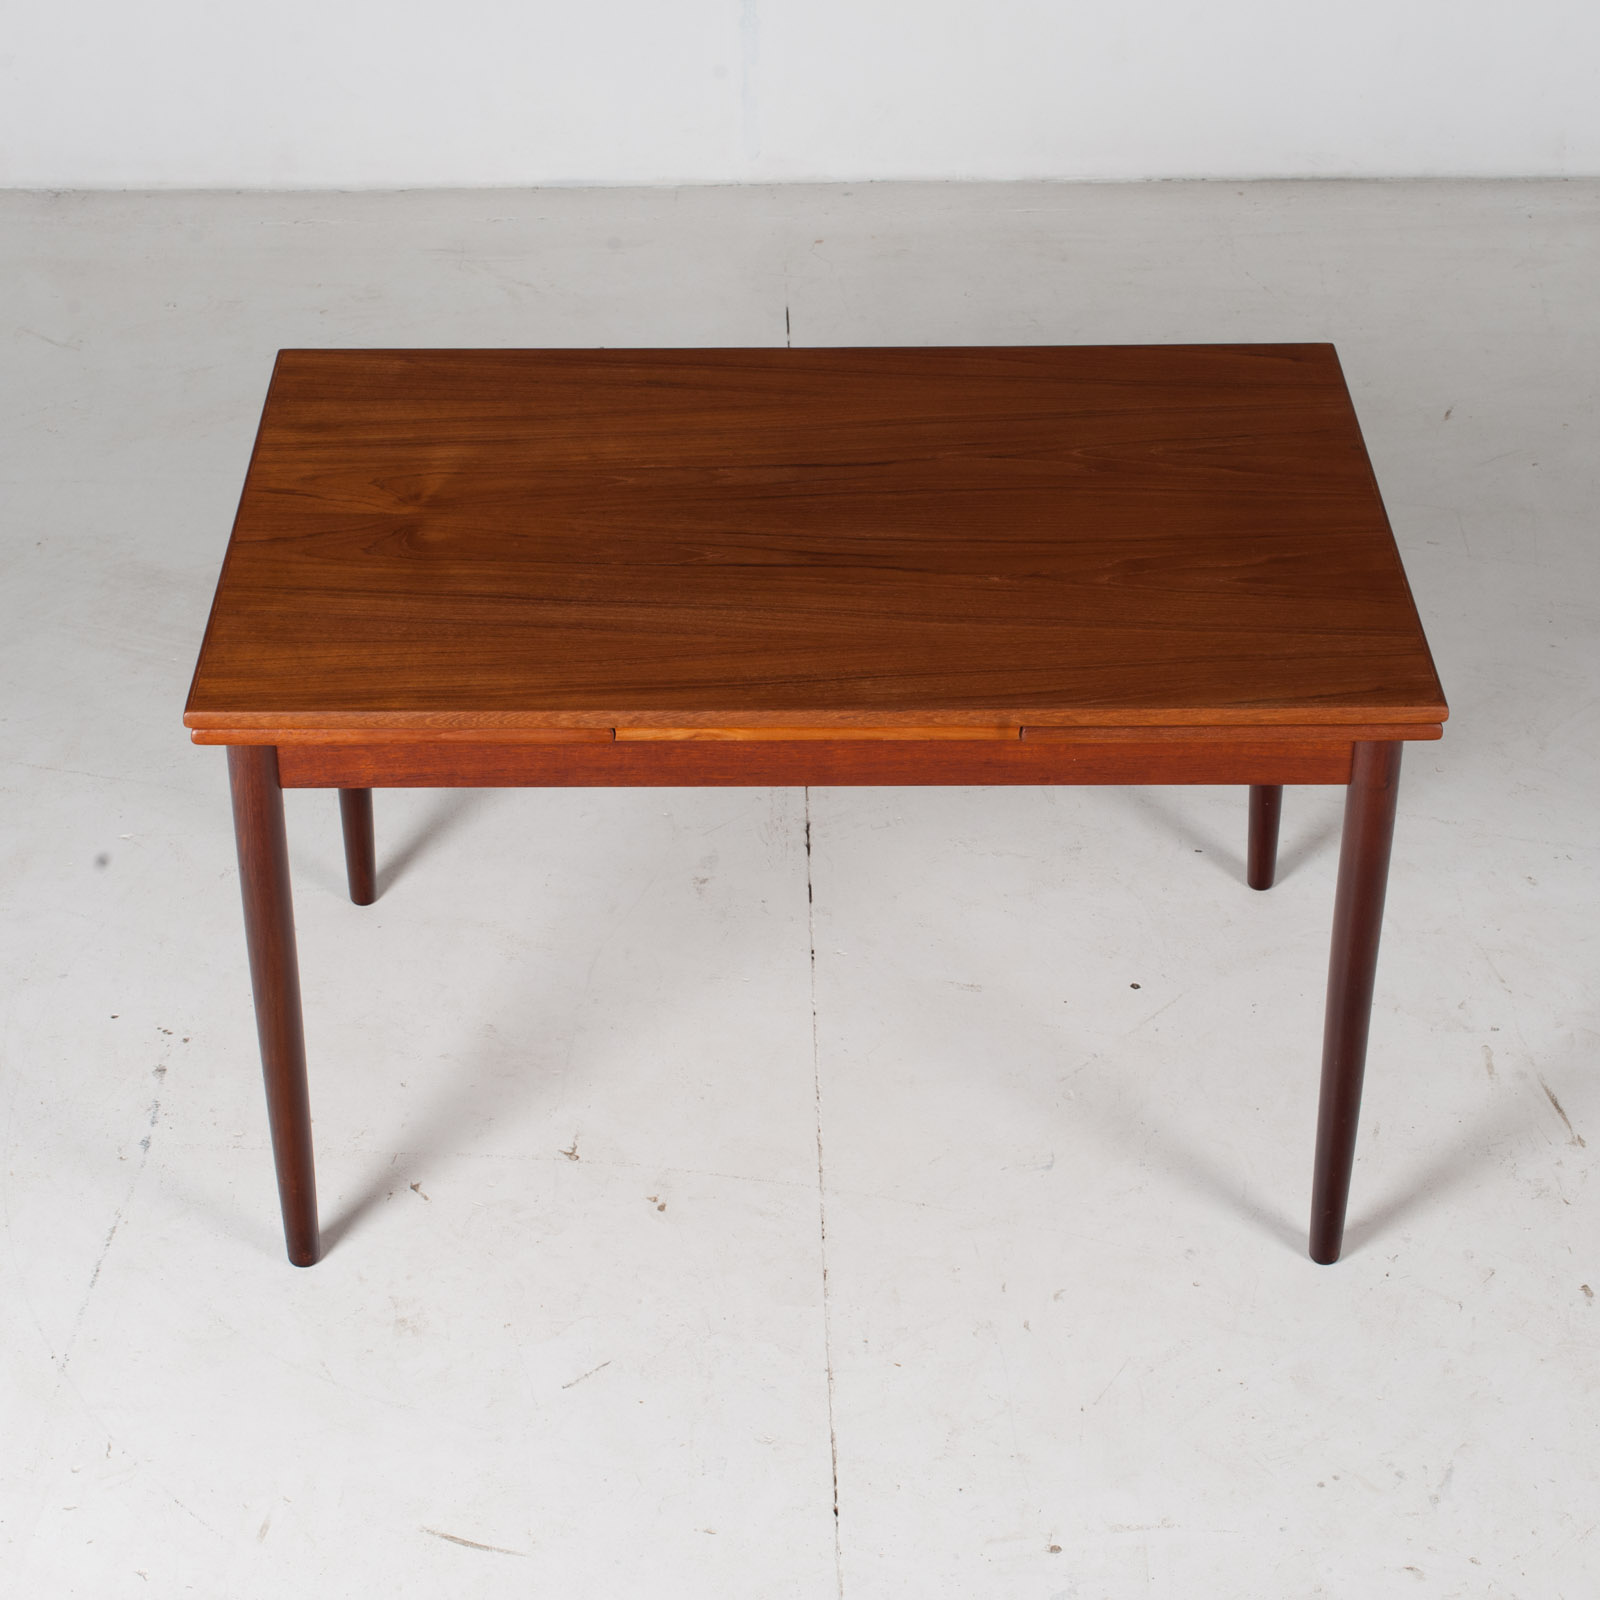 Extendable Rectangular Dining Table In Teak With Solid Edge, 1960s, Denmark3